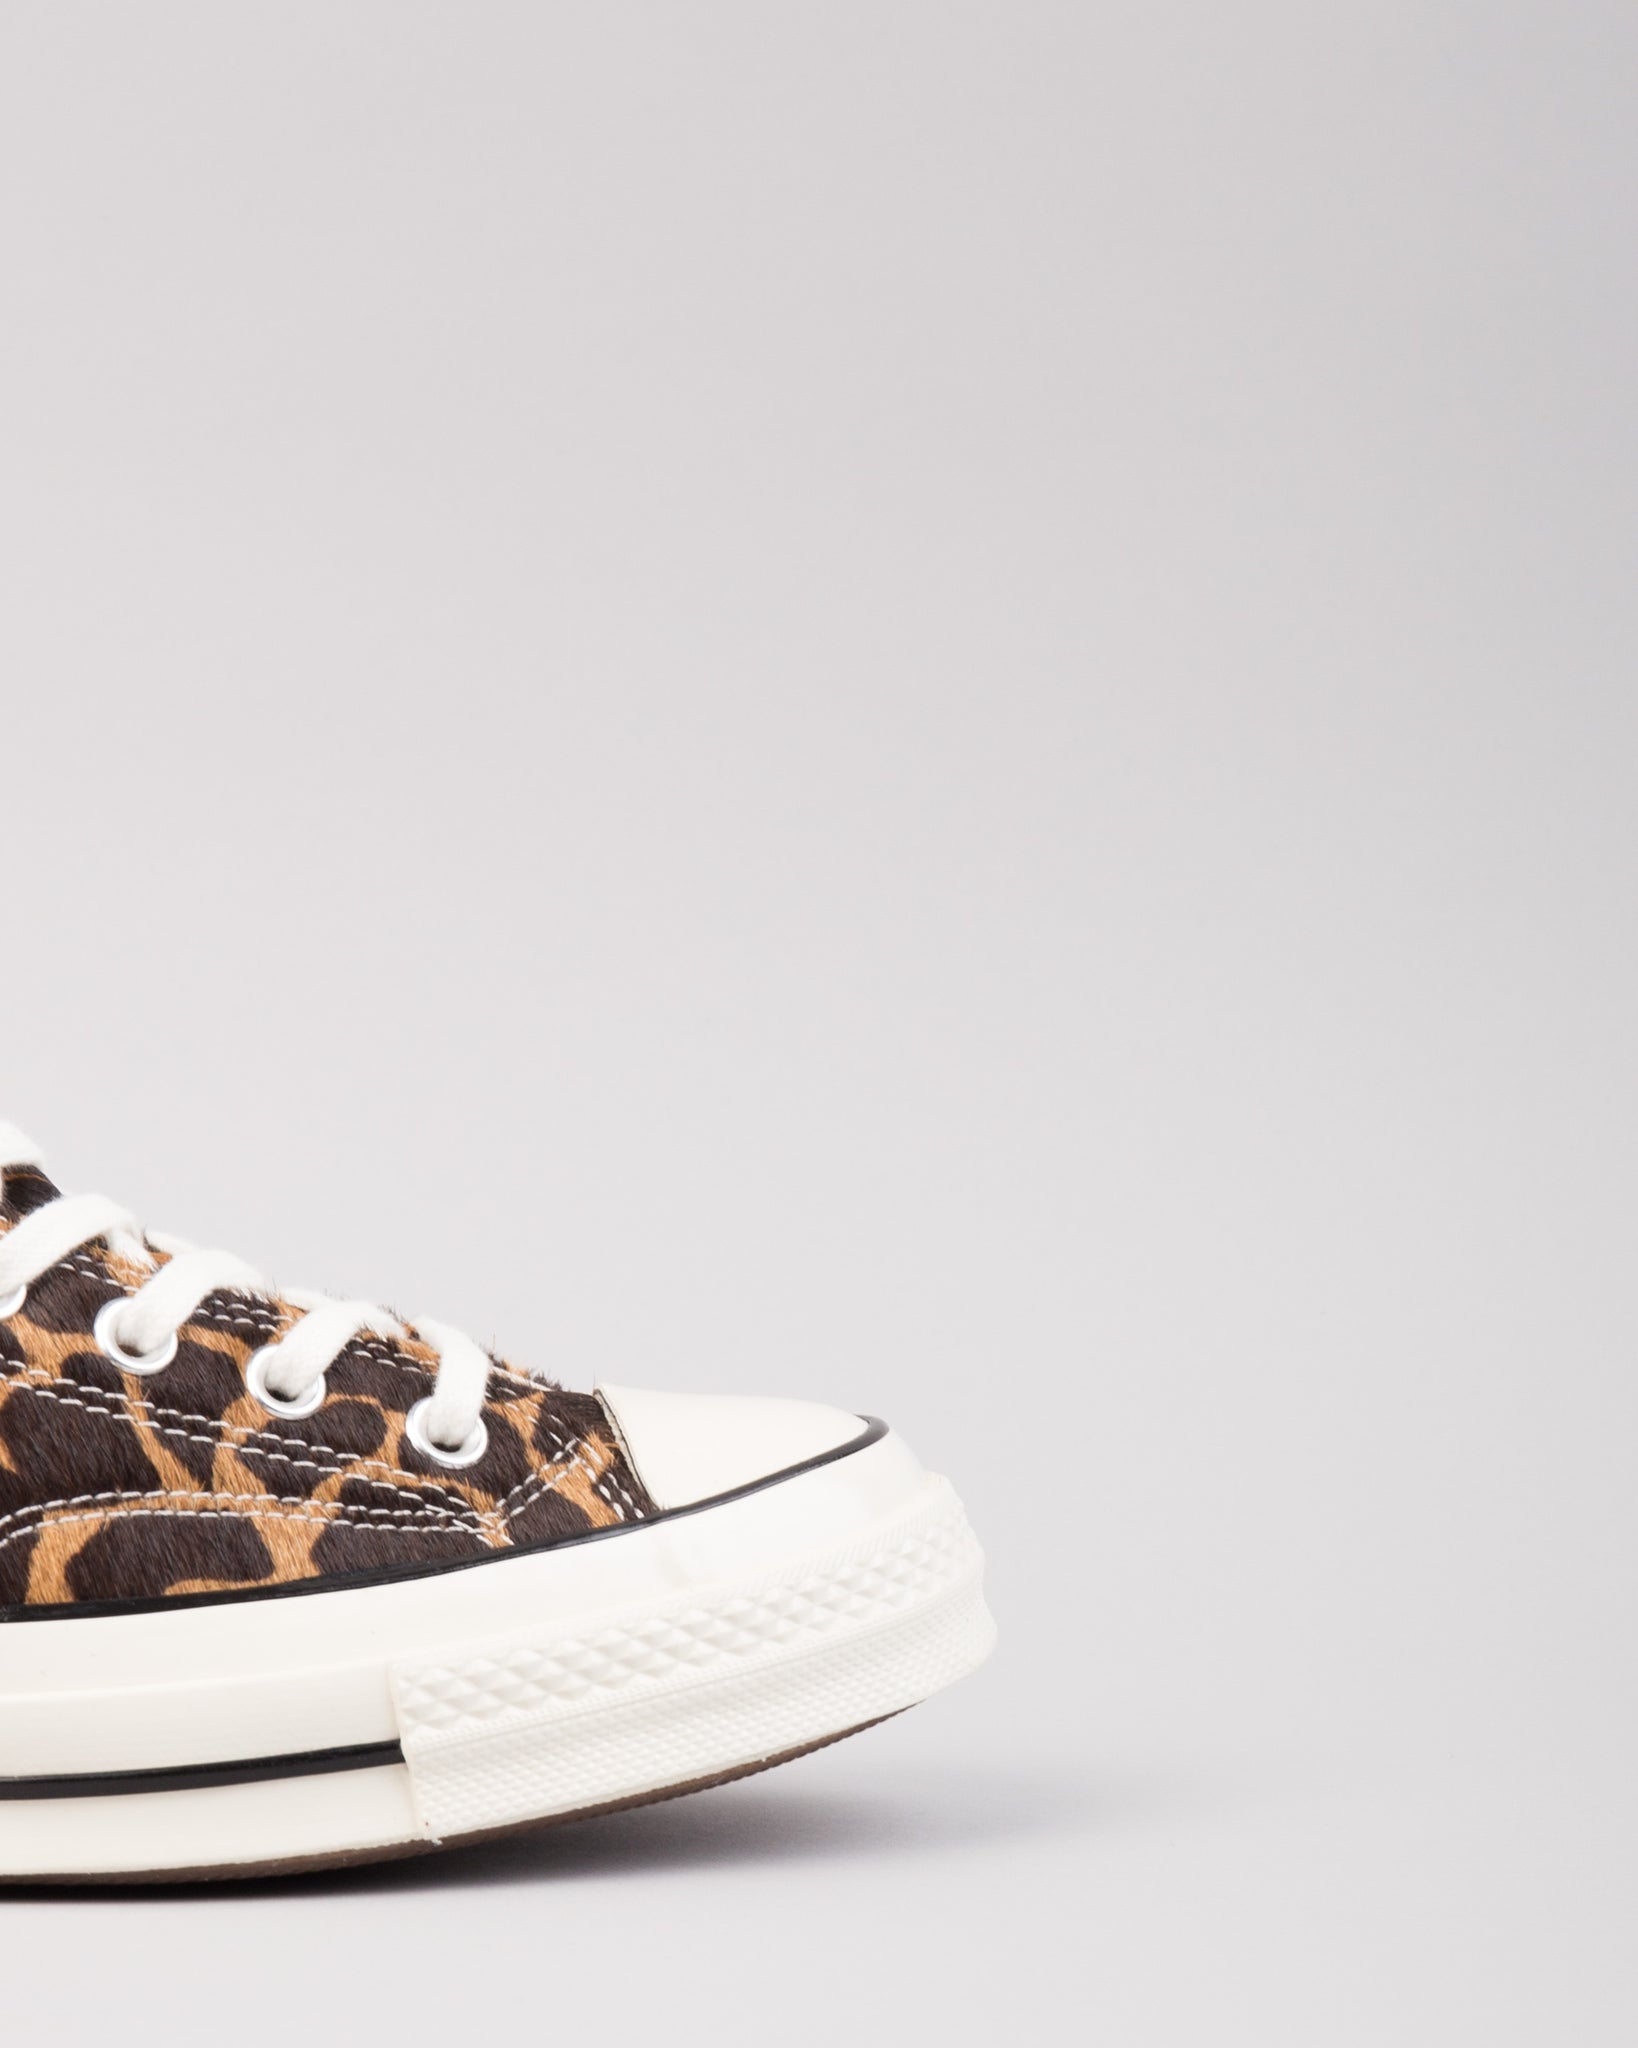 Chuck 70 HI Pony Brown/Tan/Egret